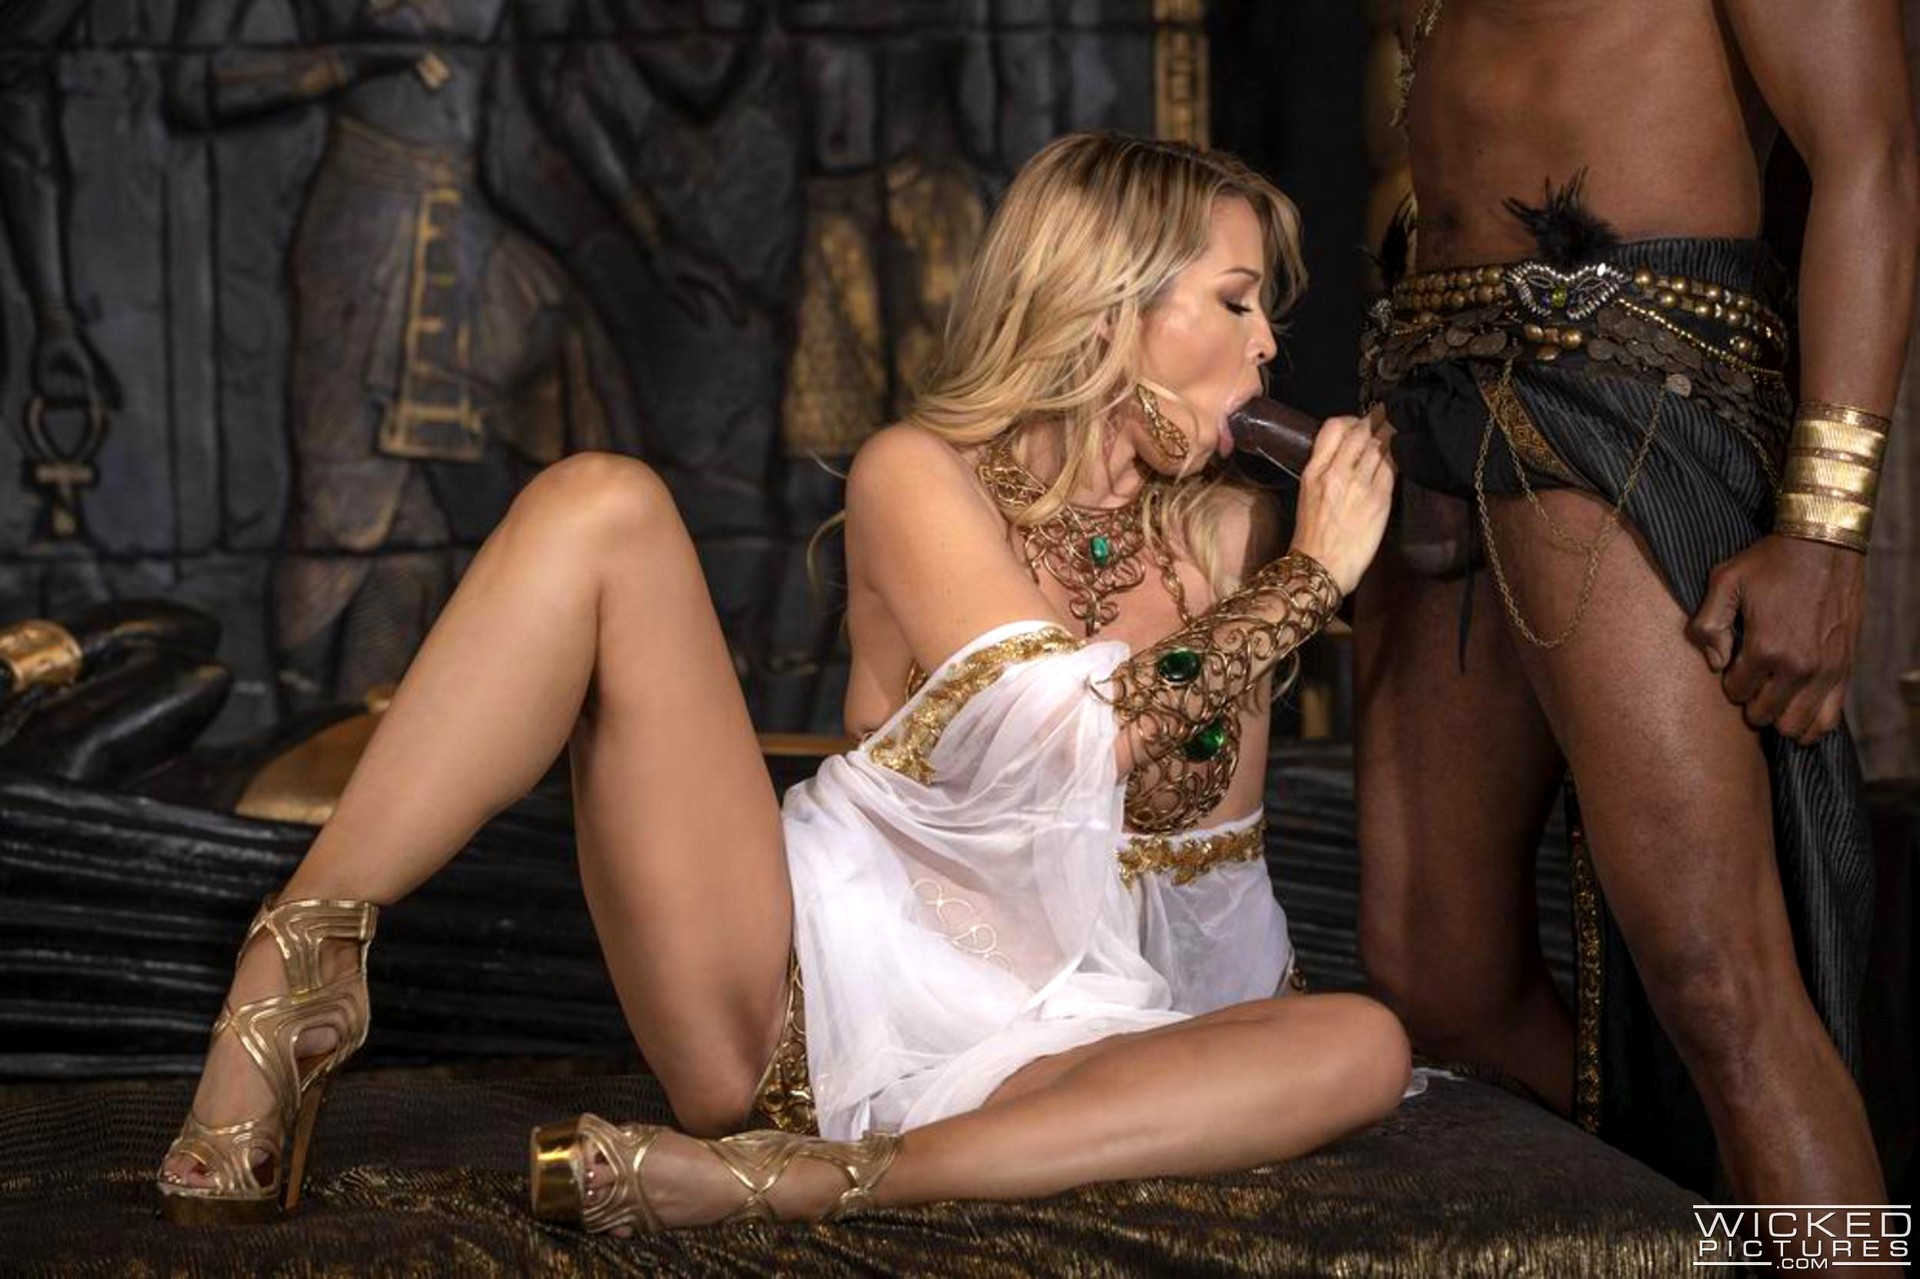 Babe Today Wicked Pictures Jessica Drake Imagescom -2417